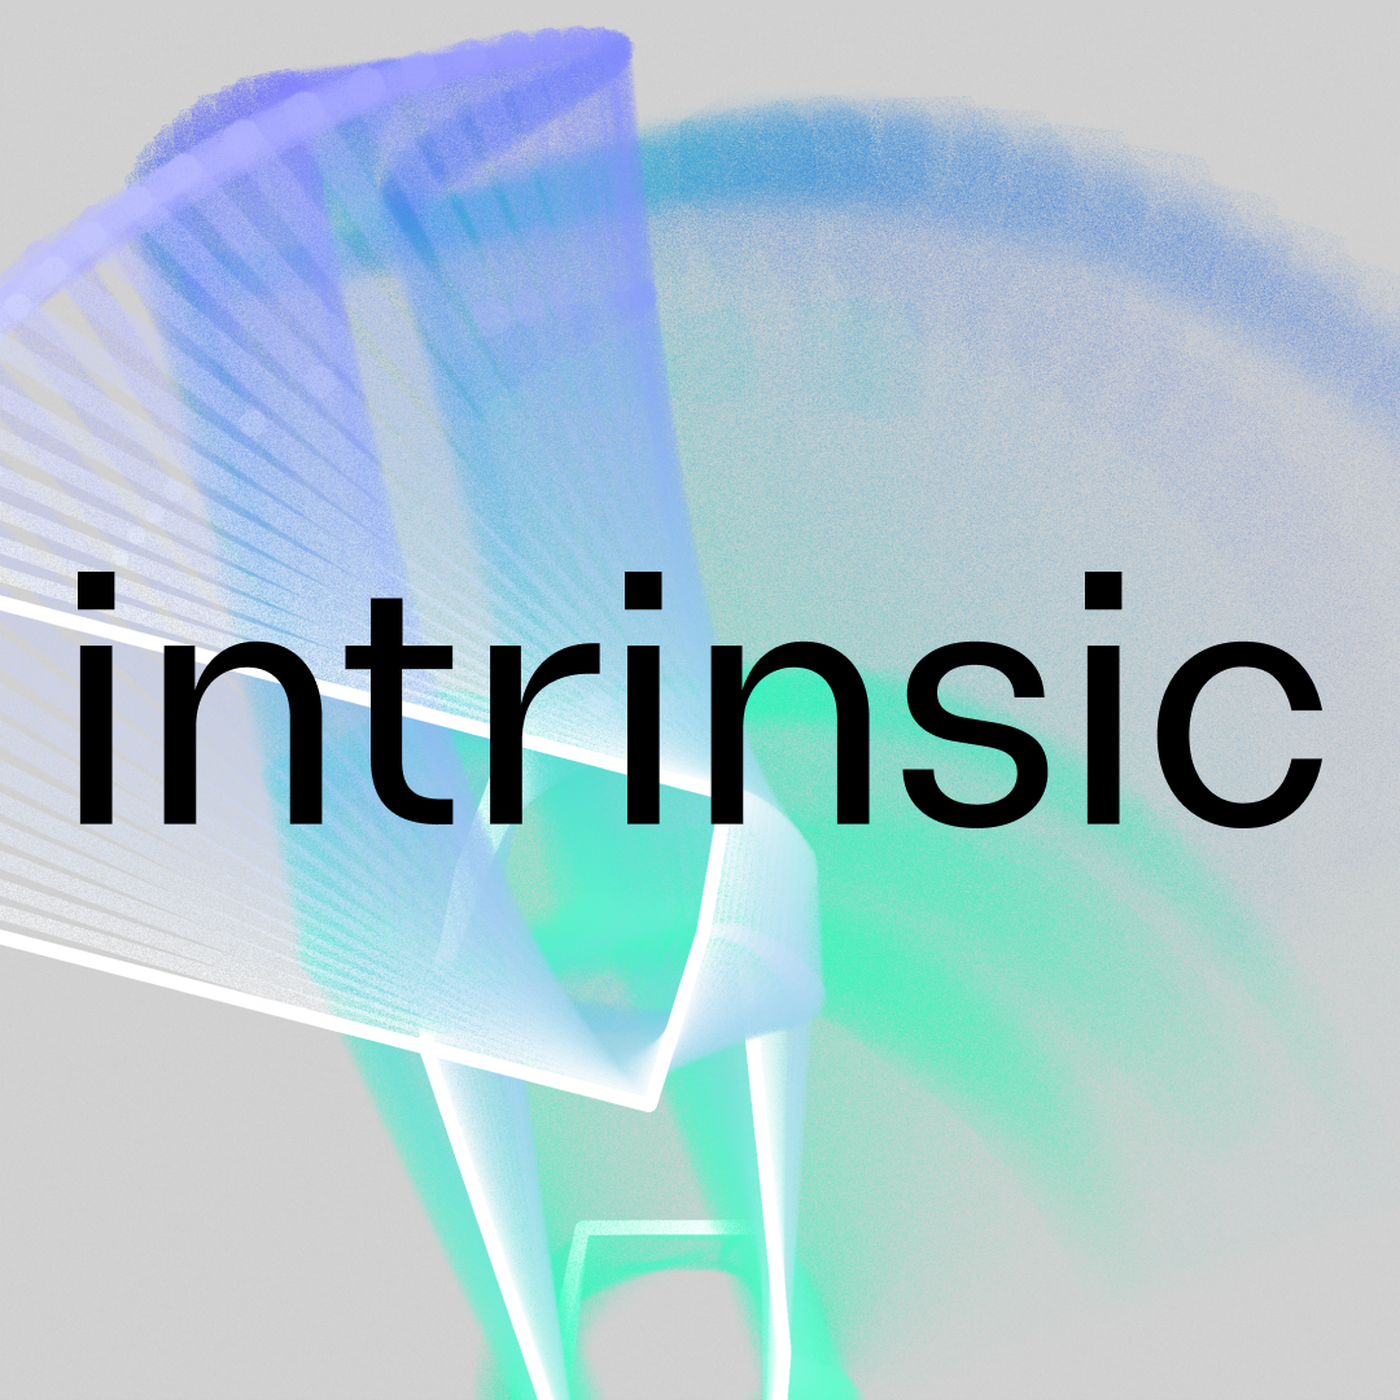 theverge.com - James Vincent - Google launches Intrinsic: a new company to build software for industrial robots